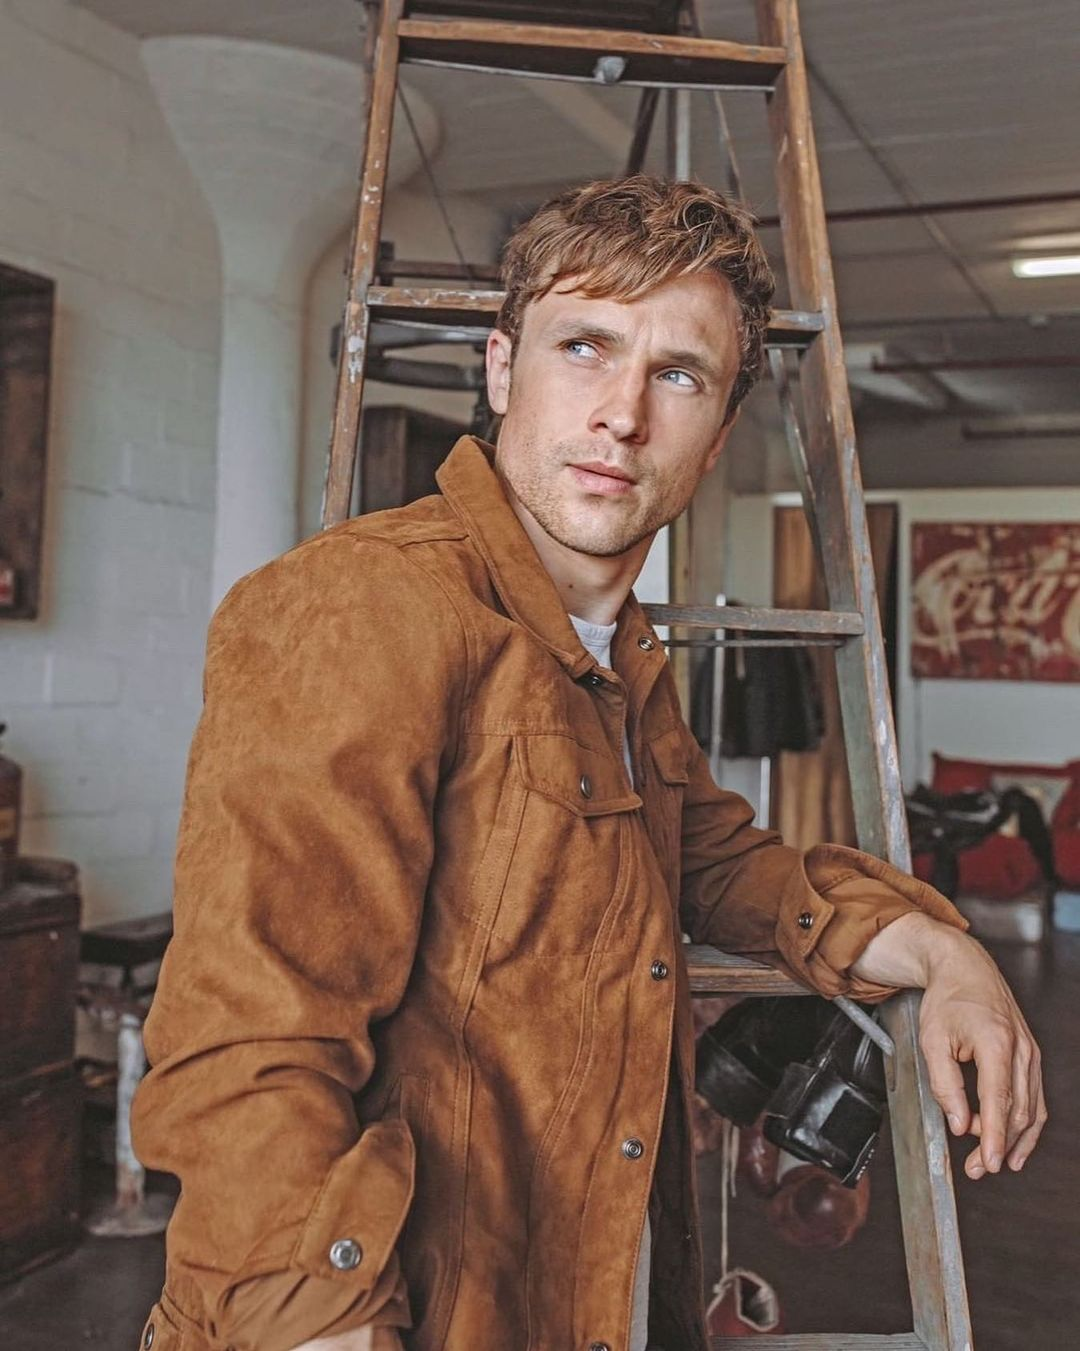 Фото: @williammoseley